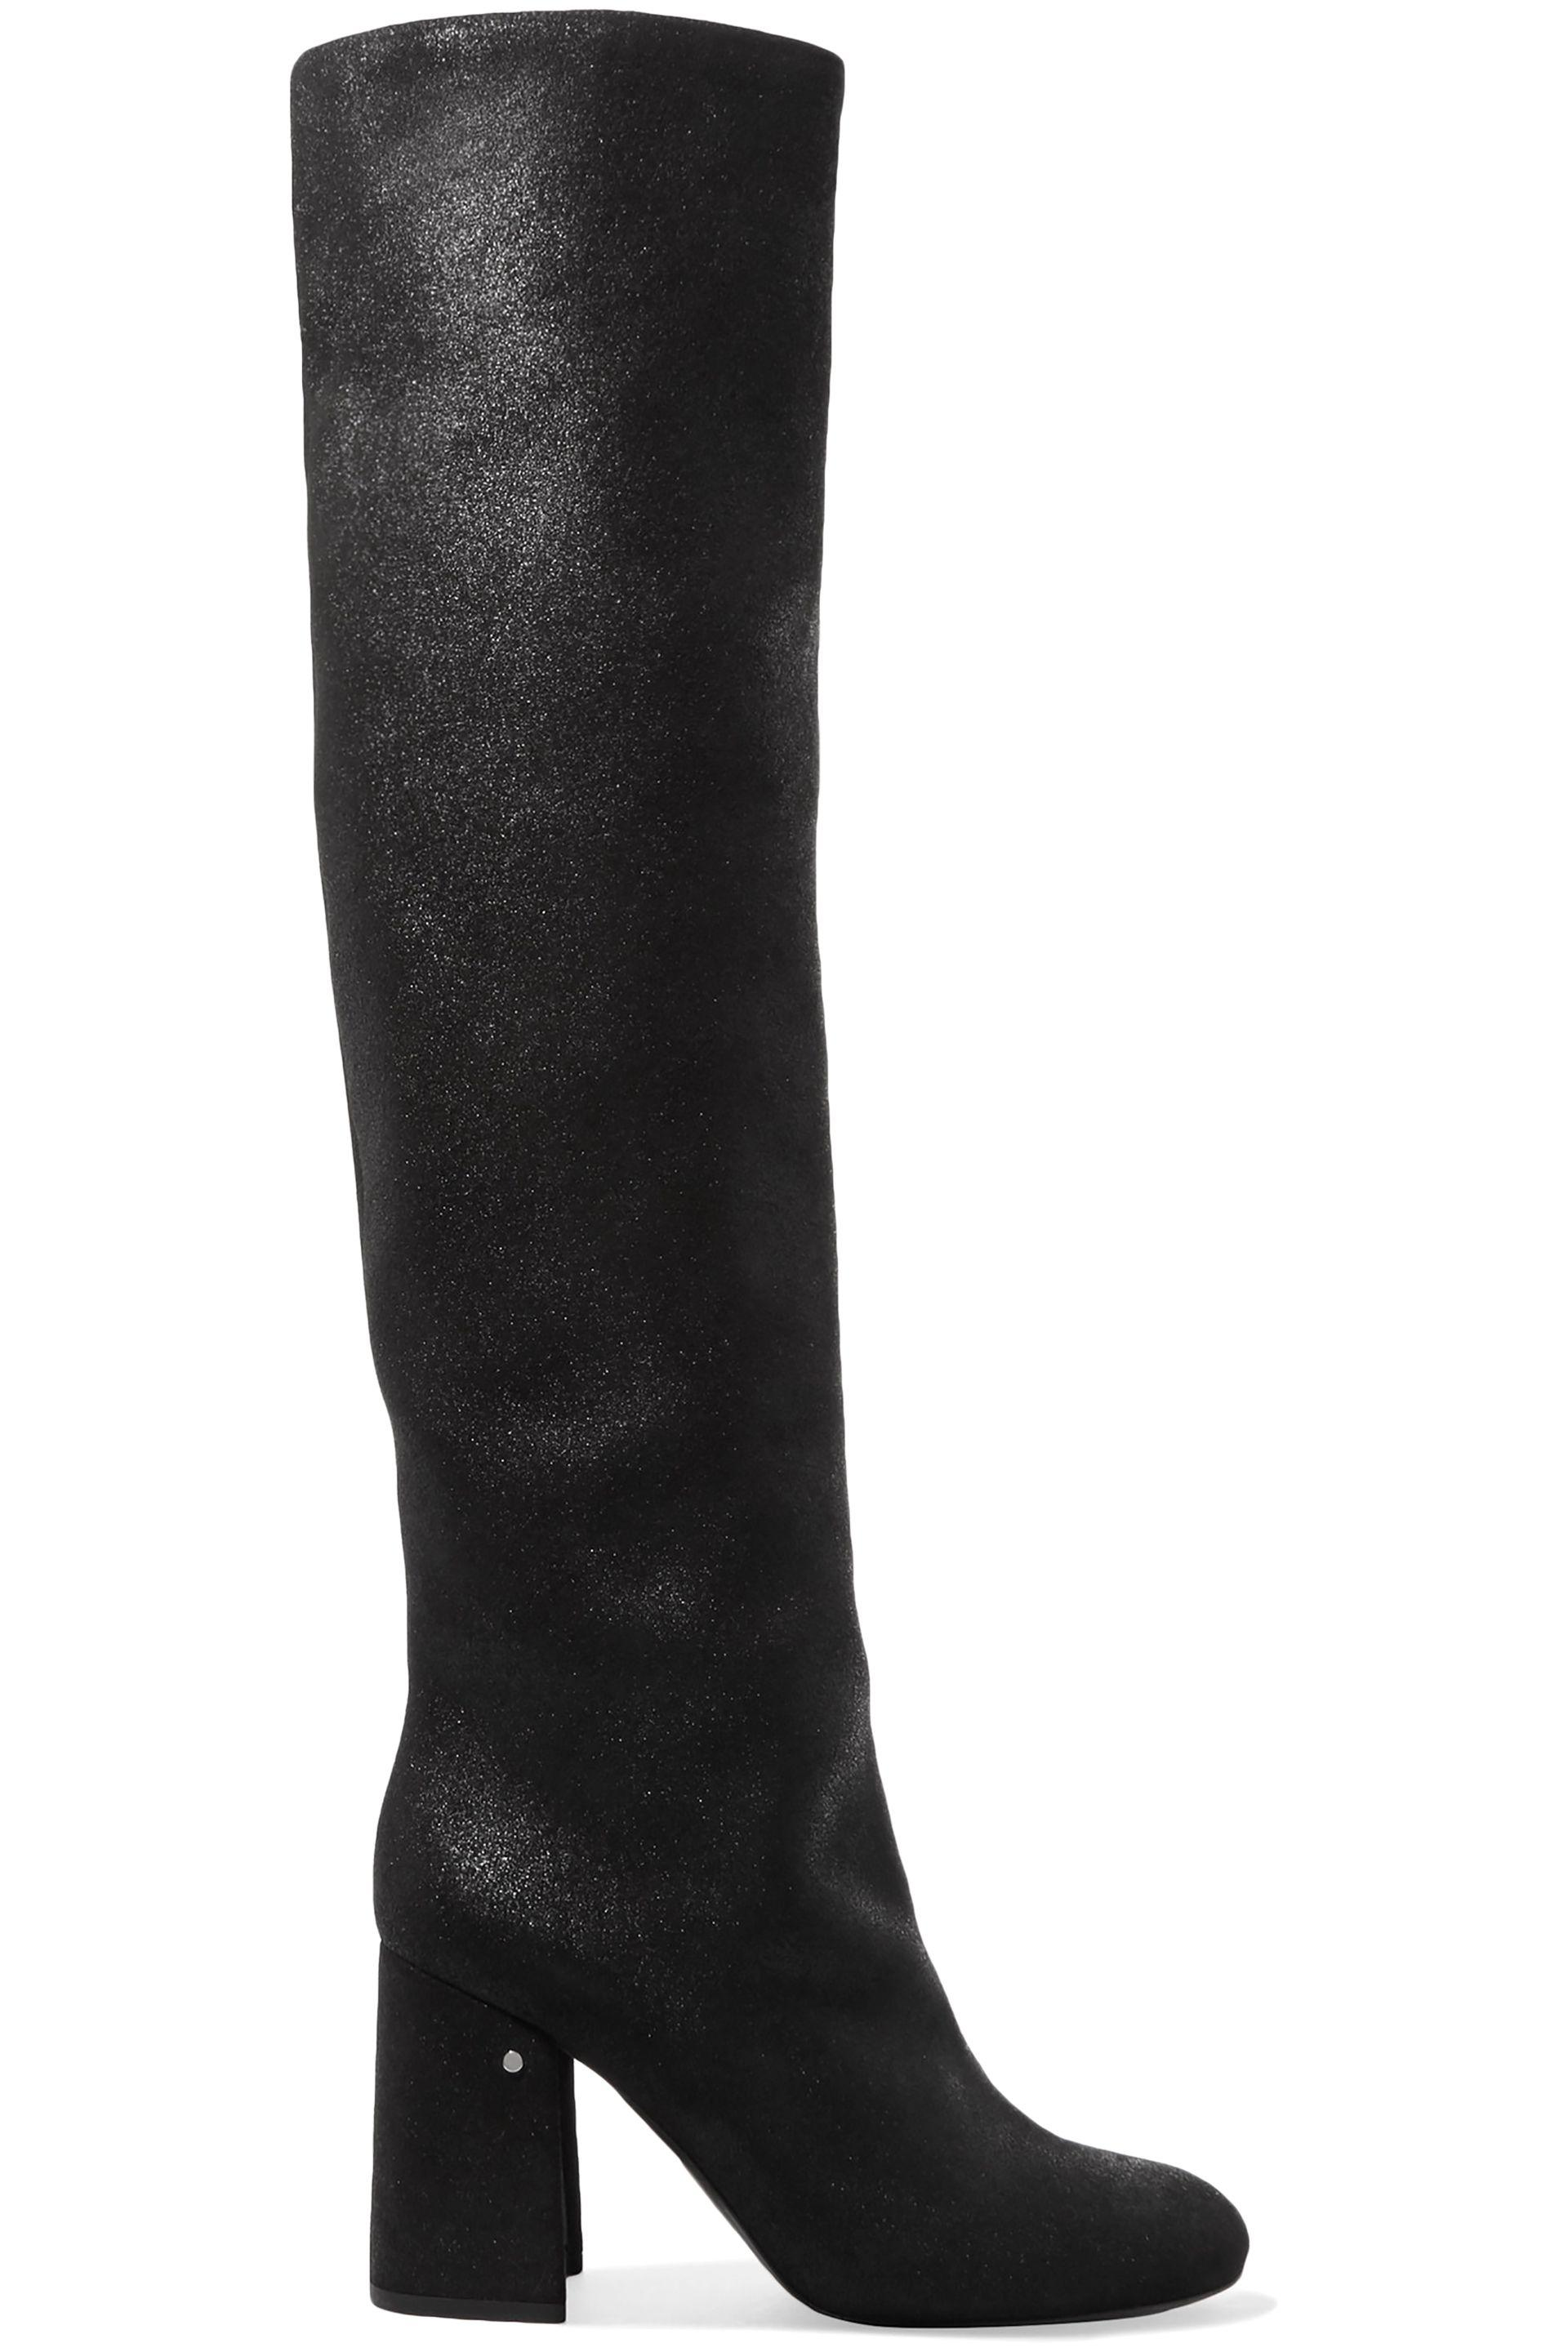 3cdc1314133 Lyst - Laurence Dacade Woman Parveen Coated-suede Knee Boots Black ...